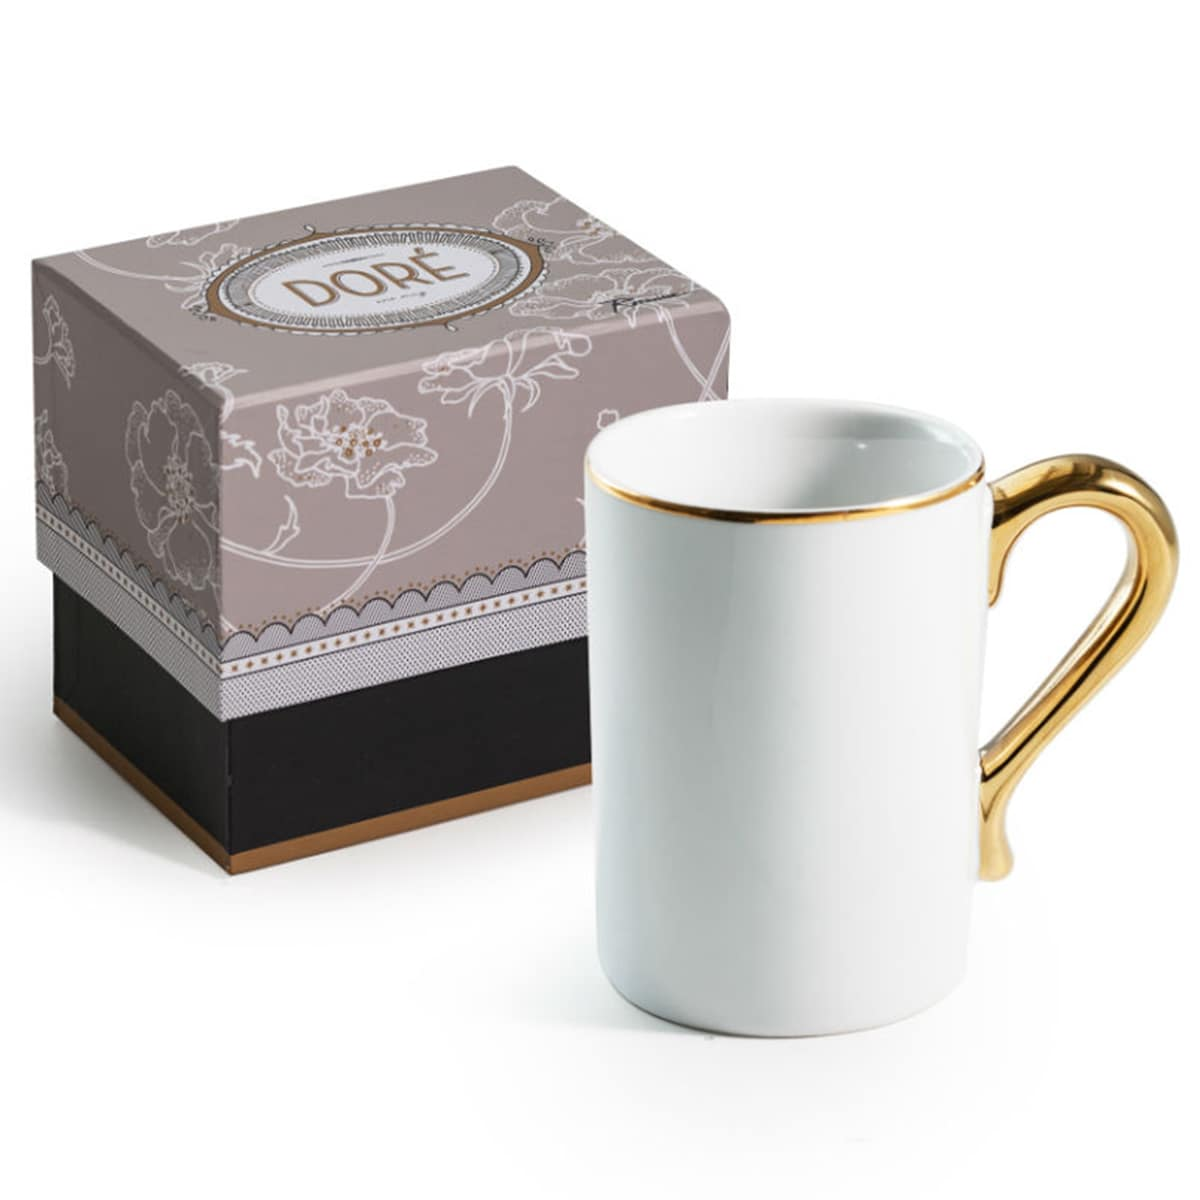 10 Pretty Mugs to Dress Up Your Desk: gallery image 3